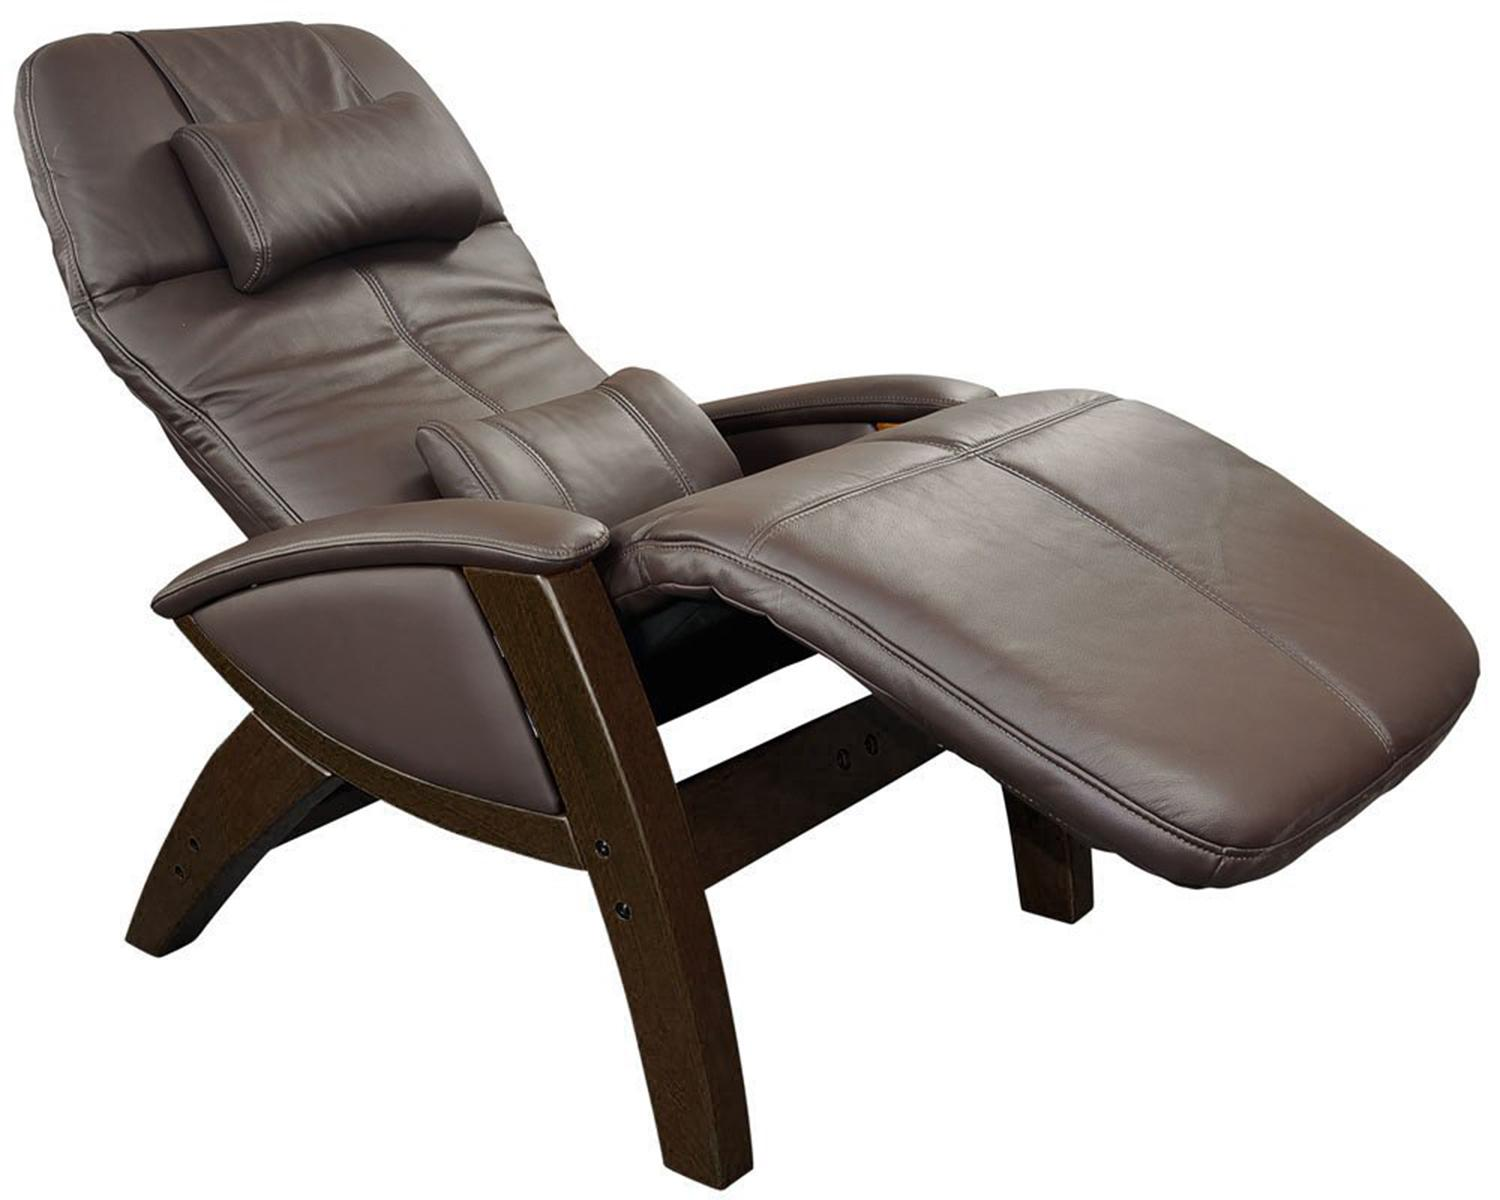 Best Zero Gravity Recliners In 2019